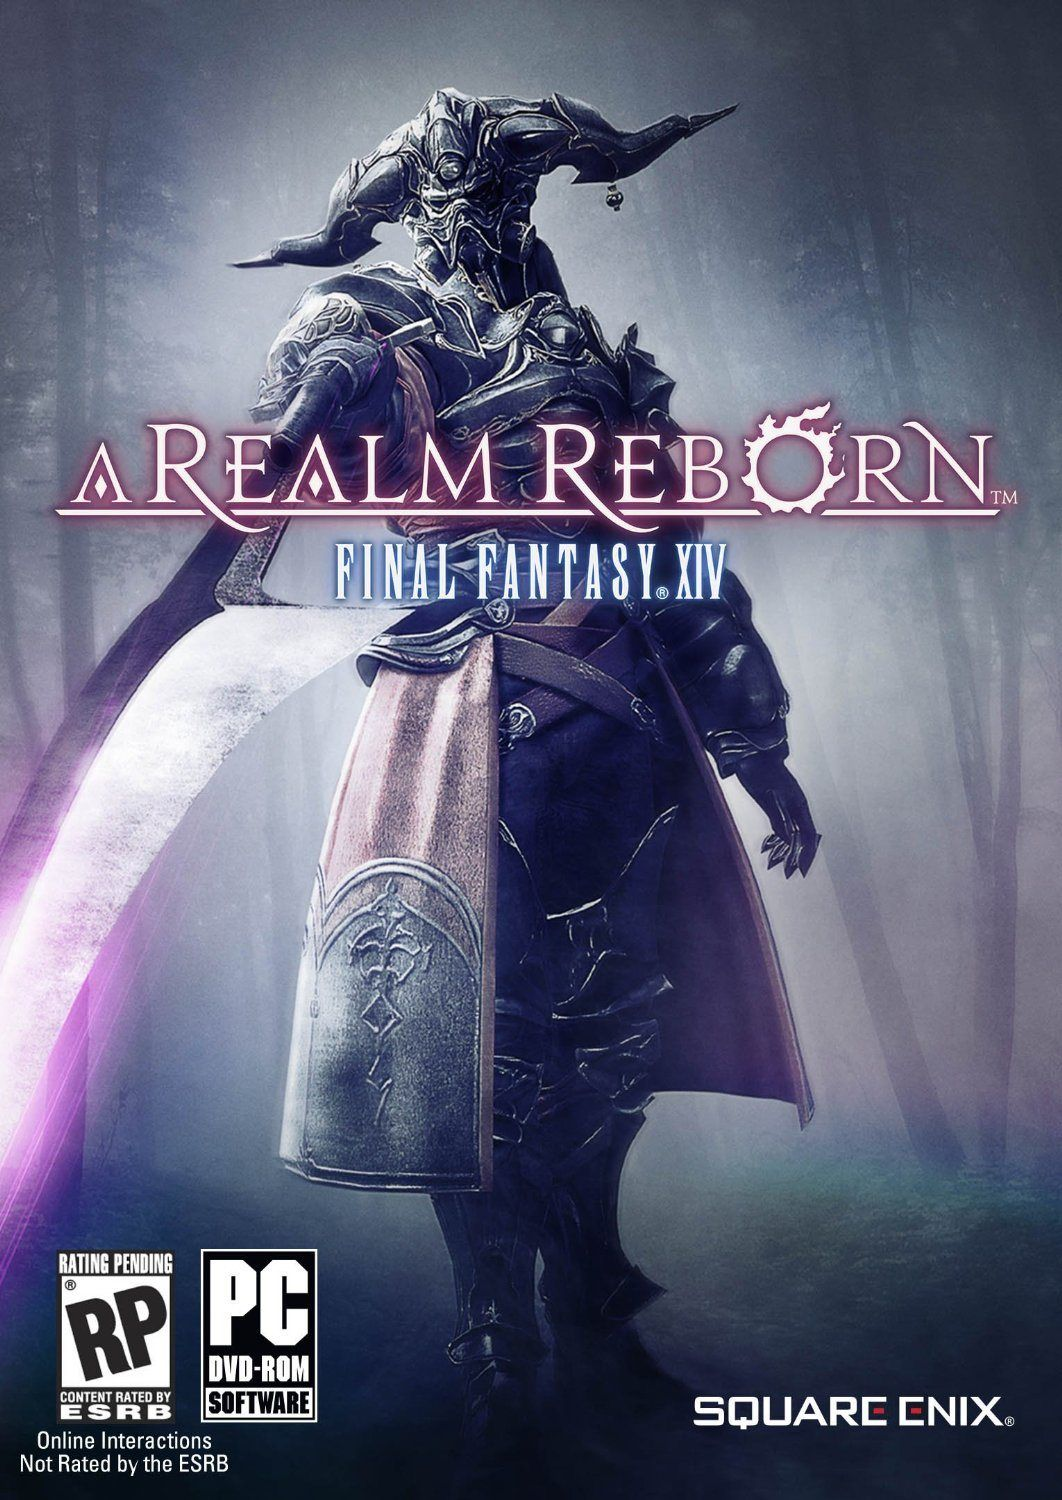 Final Fantasy Xiv A Realm Reborn Pc Ps3 Final Fantasy Realm